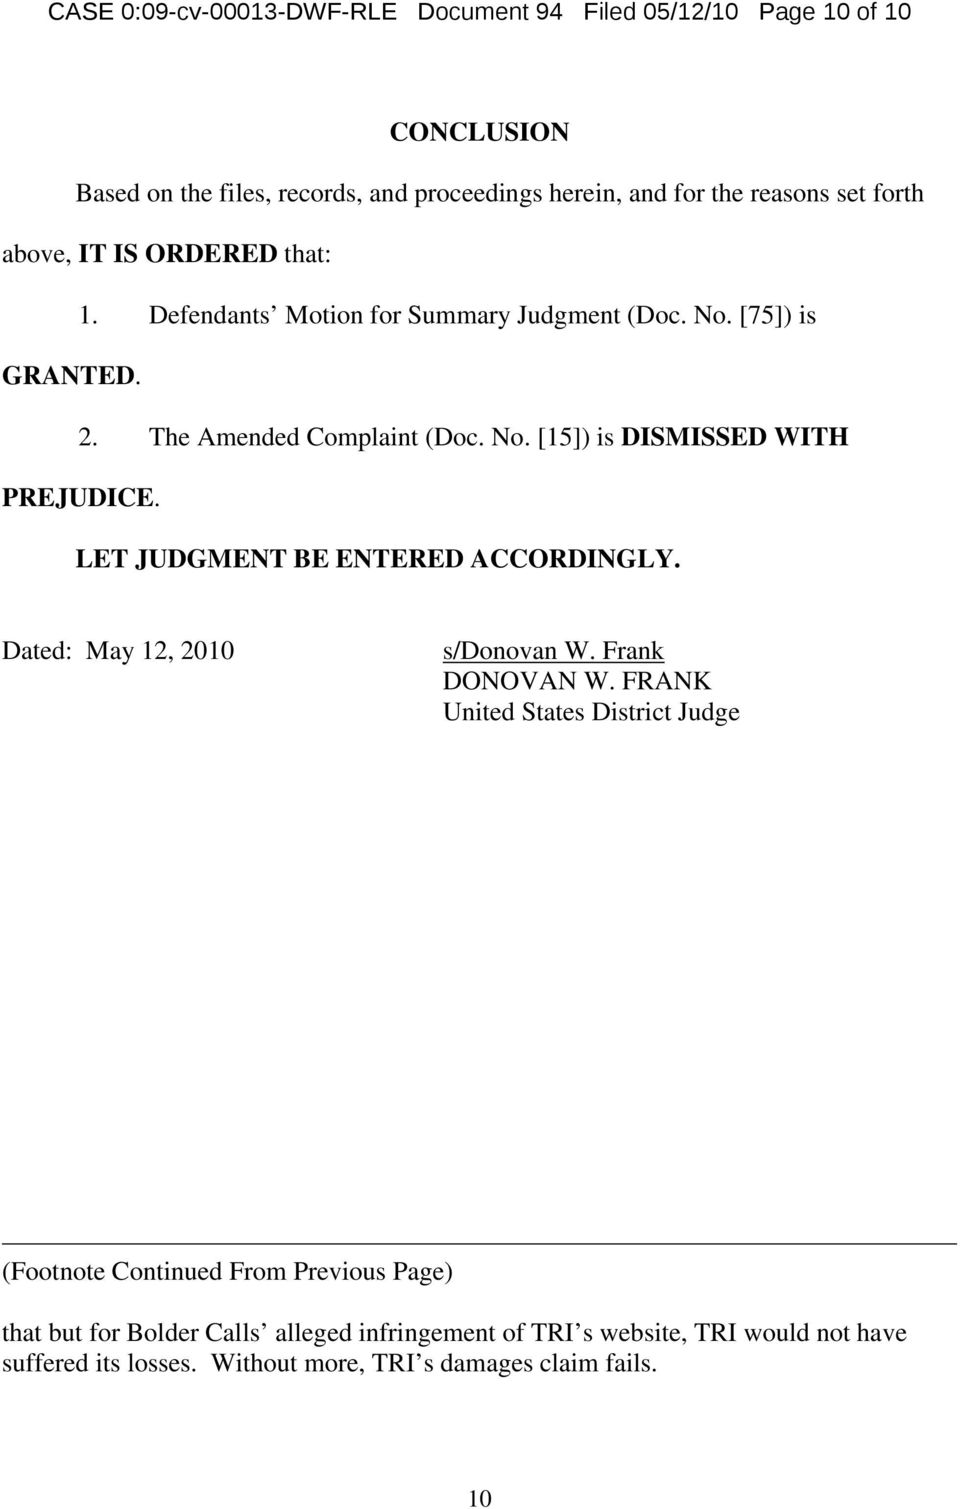 LET JUDGMENT BE ENTERED ACCORDINGLY. Dated: May 12, 2010 s/donovan W. Frank DONOVAN W.